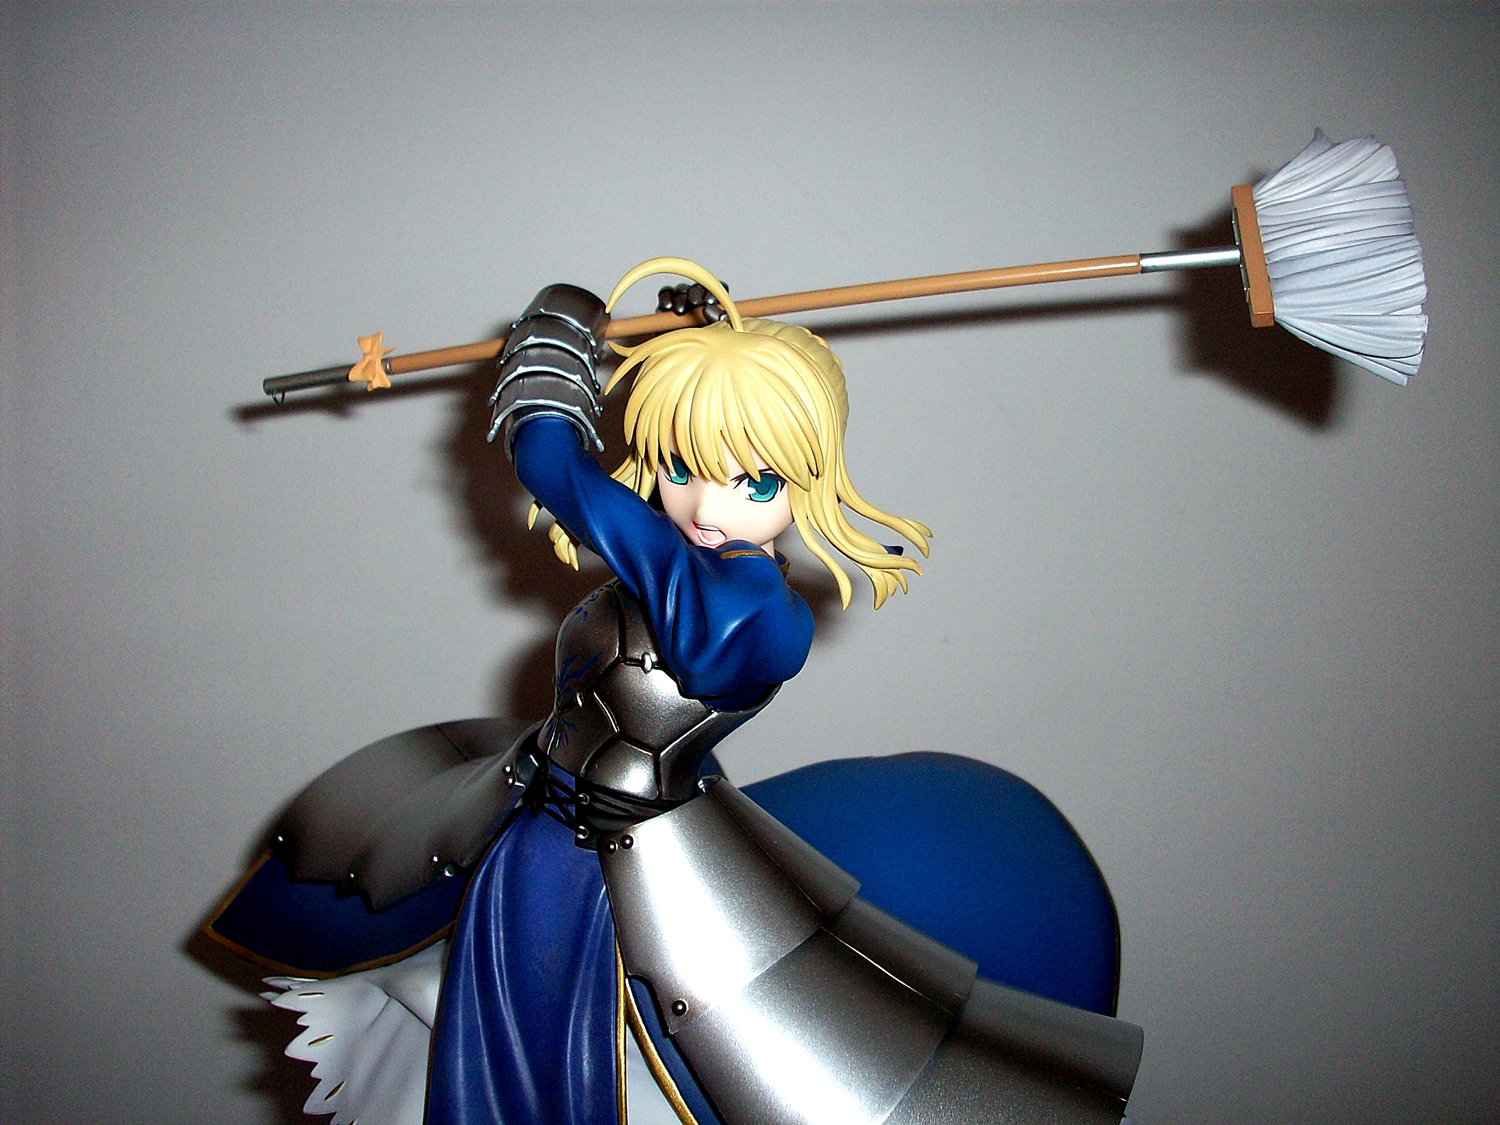 blond_hair kotobukiya blue_dress armour green_eyes saber funny type_moon good_smile_company fate/stay_night to_heart_2 tokunaga_hironori kawahara_takayuki final_dragon_chronicle_-guilty_requiem- hmx-17c_silfa